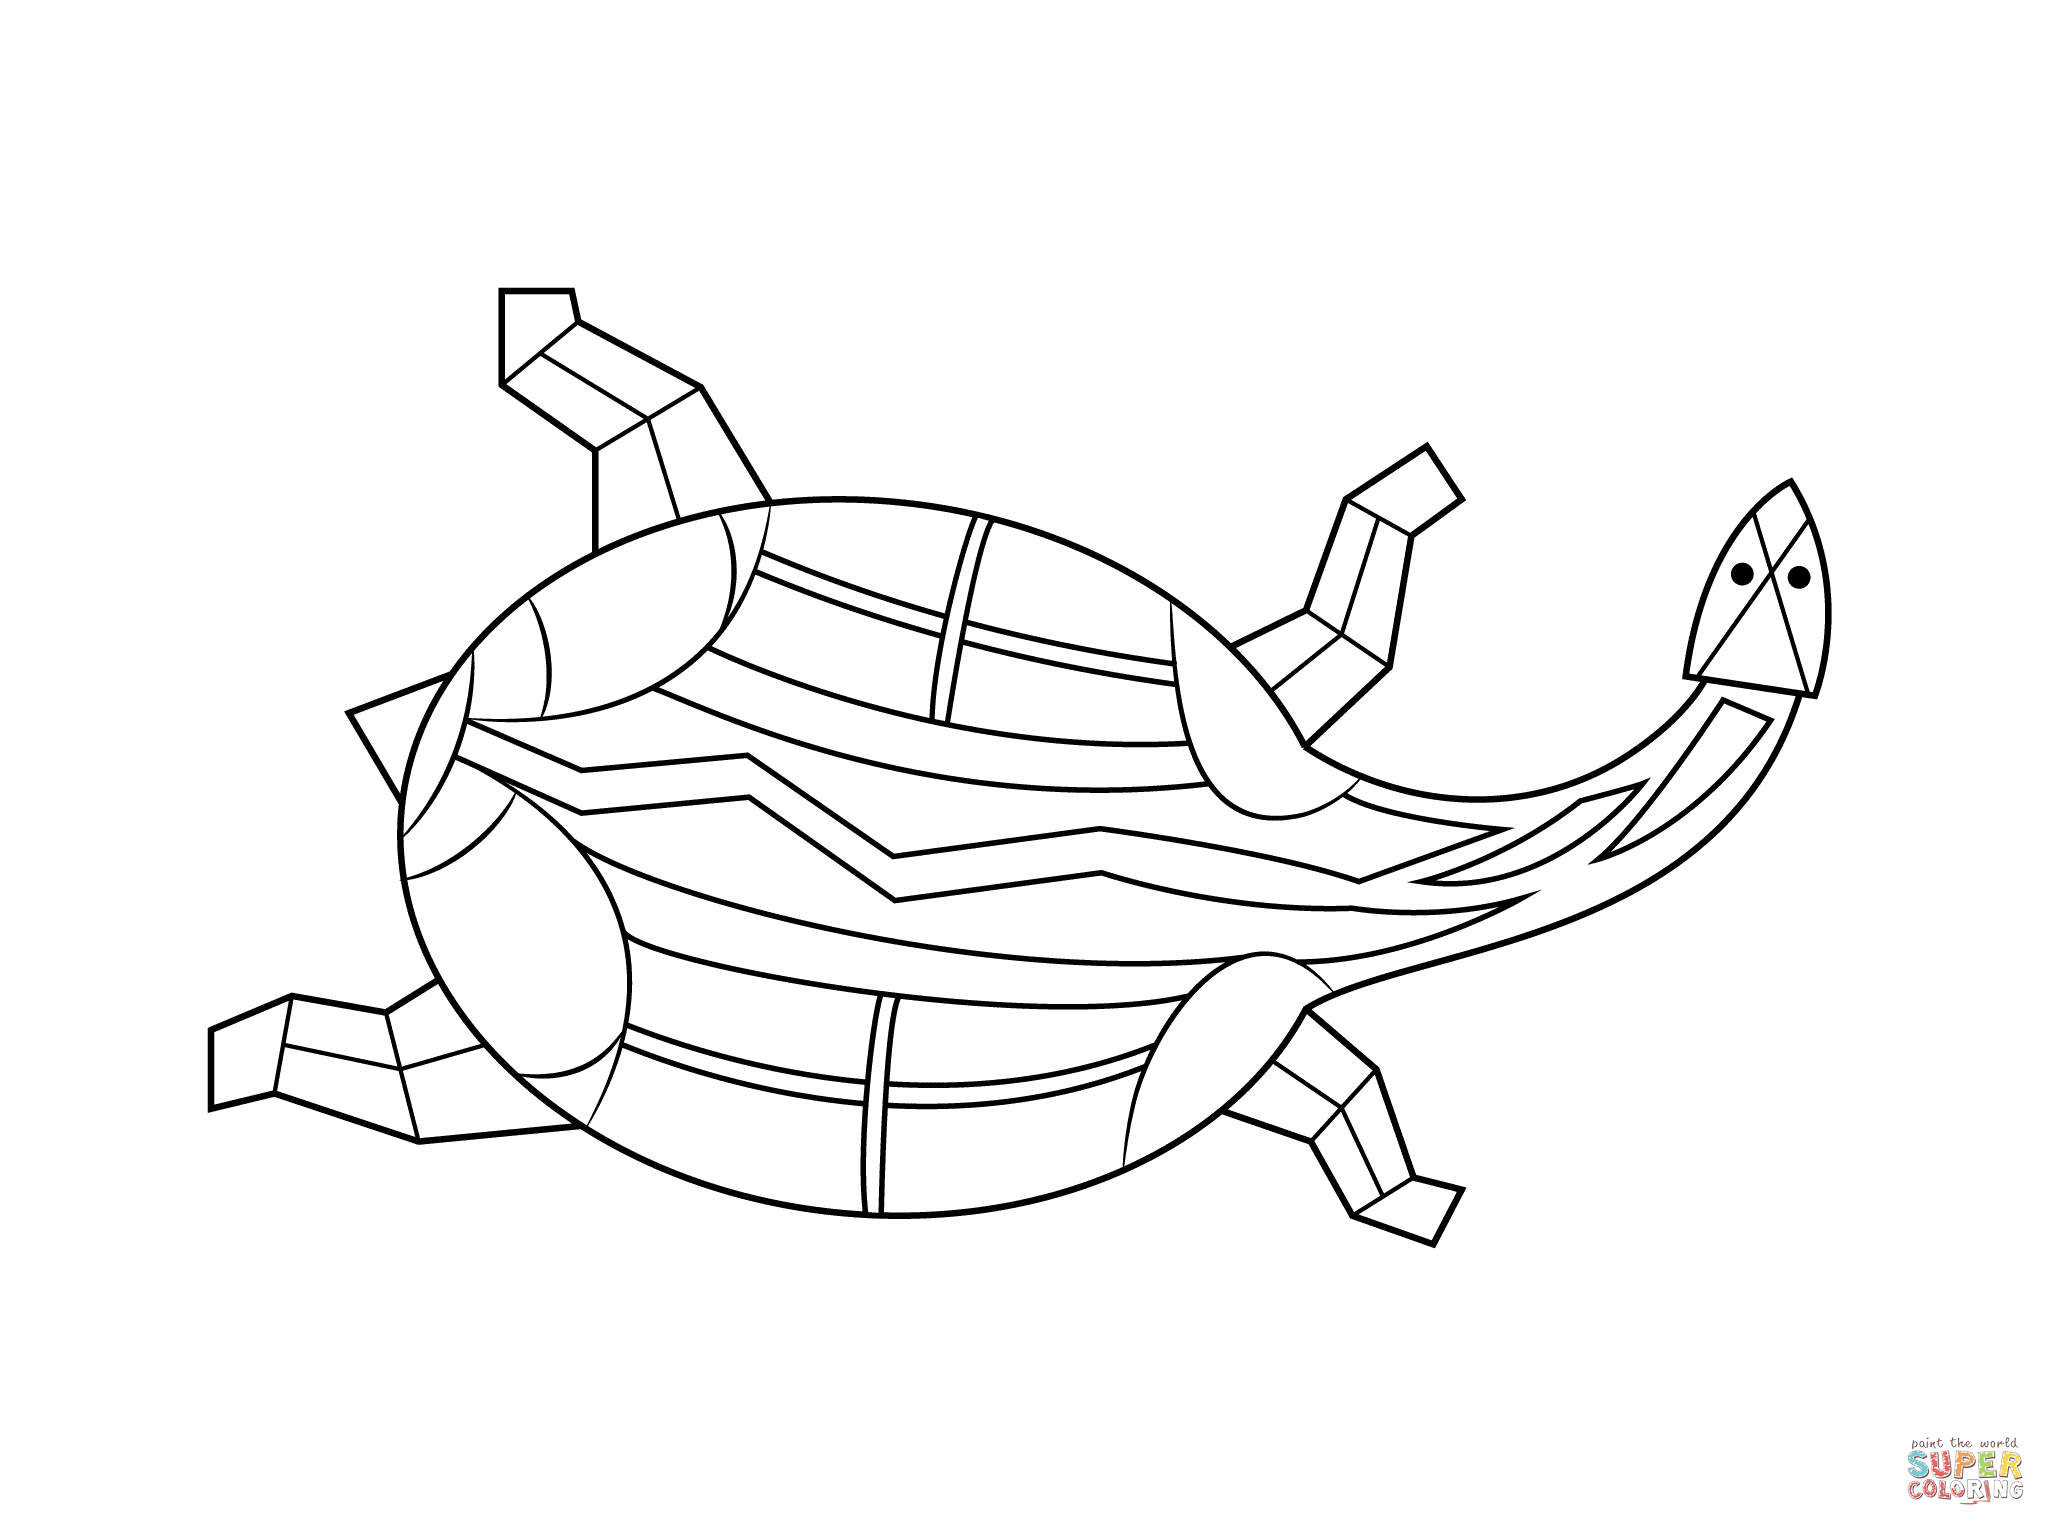 aboriginal coloring pages aboriginal coloring pages at getdrawings free download coloring pages aboriginal